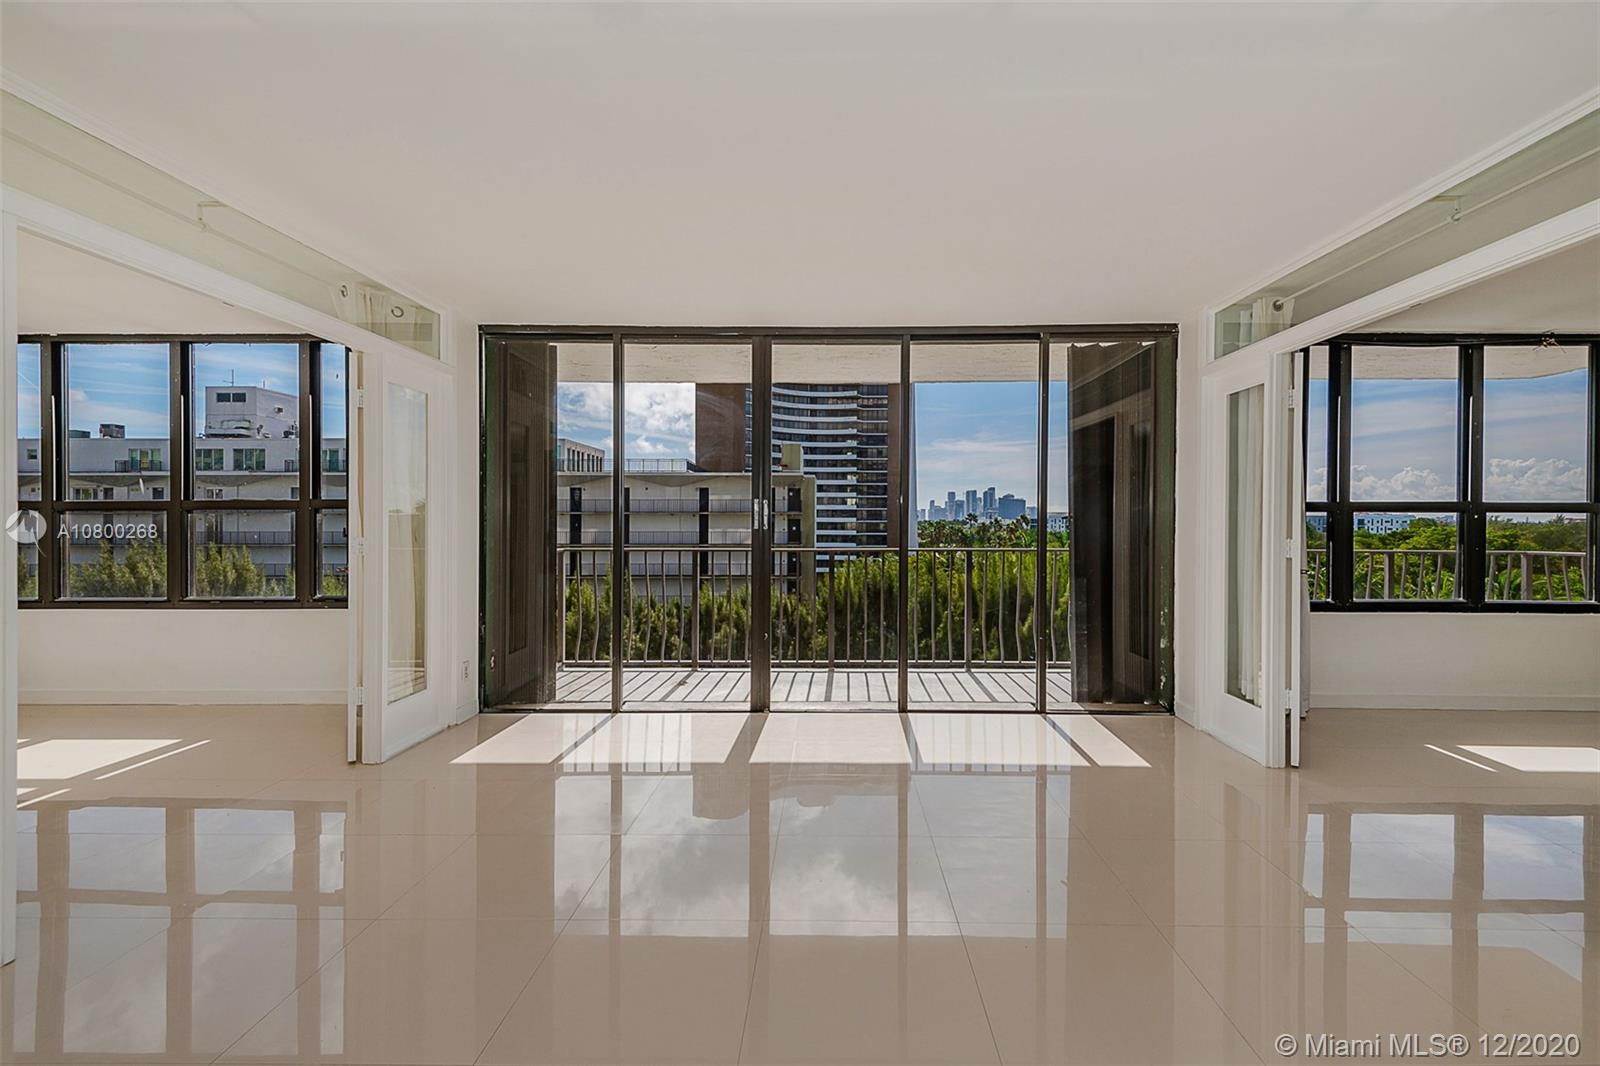 780 NE 69th St # 605, Miami, Florida 33138, 2 Bedrooms Bedrooms, ,2 BathroomsBathrooms,Residential,For Sale,780 NE 69th St # 605,A10800268